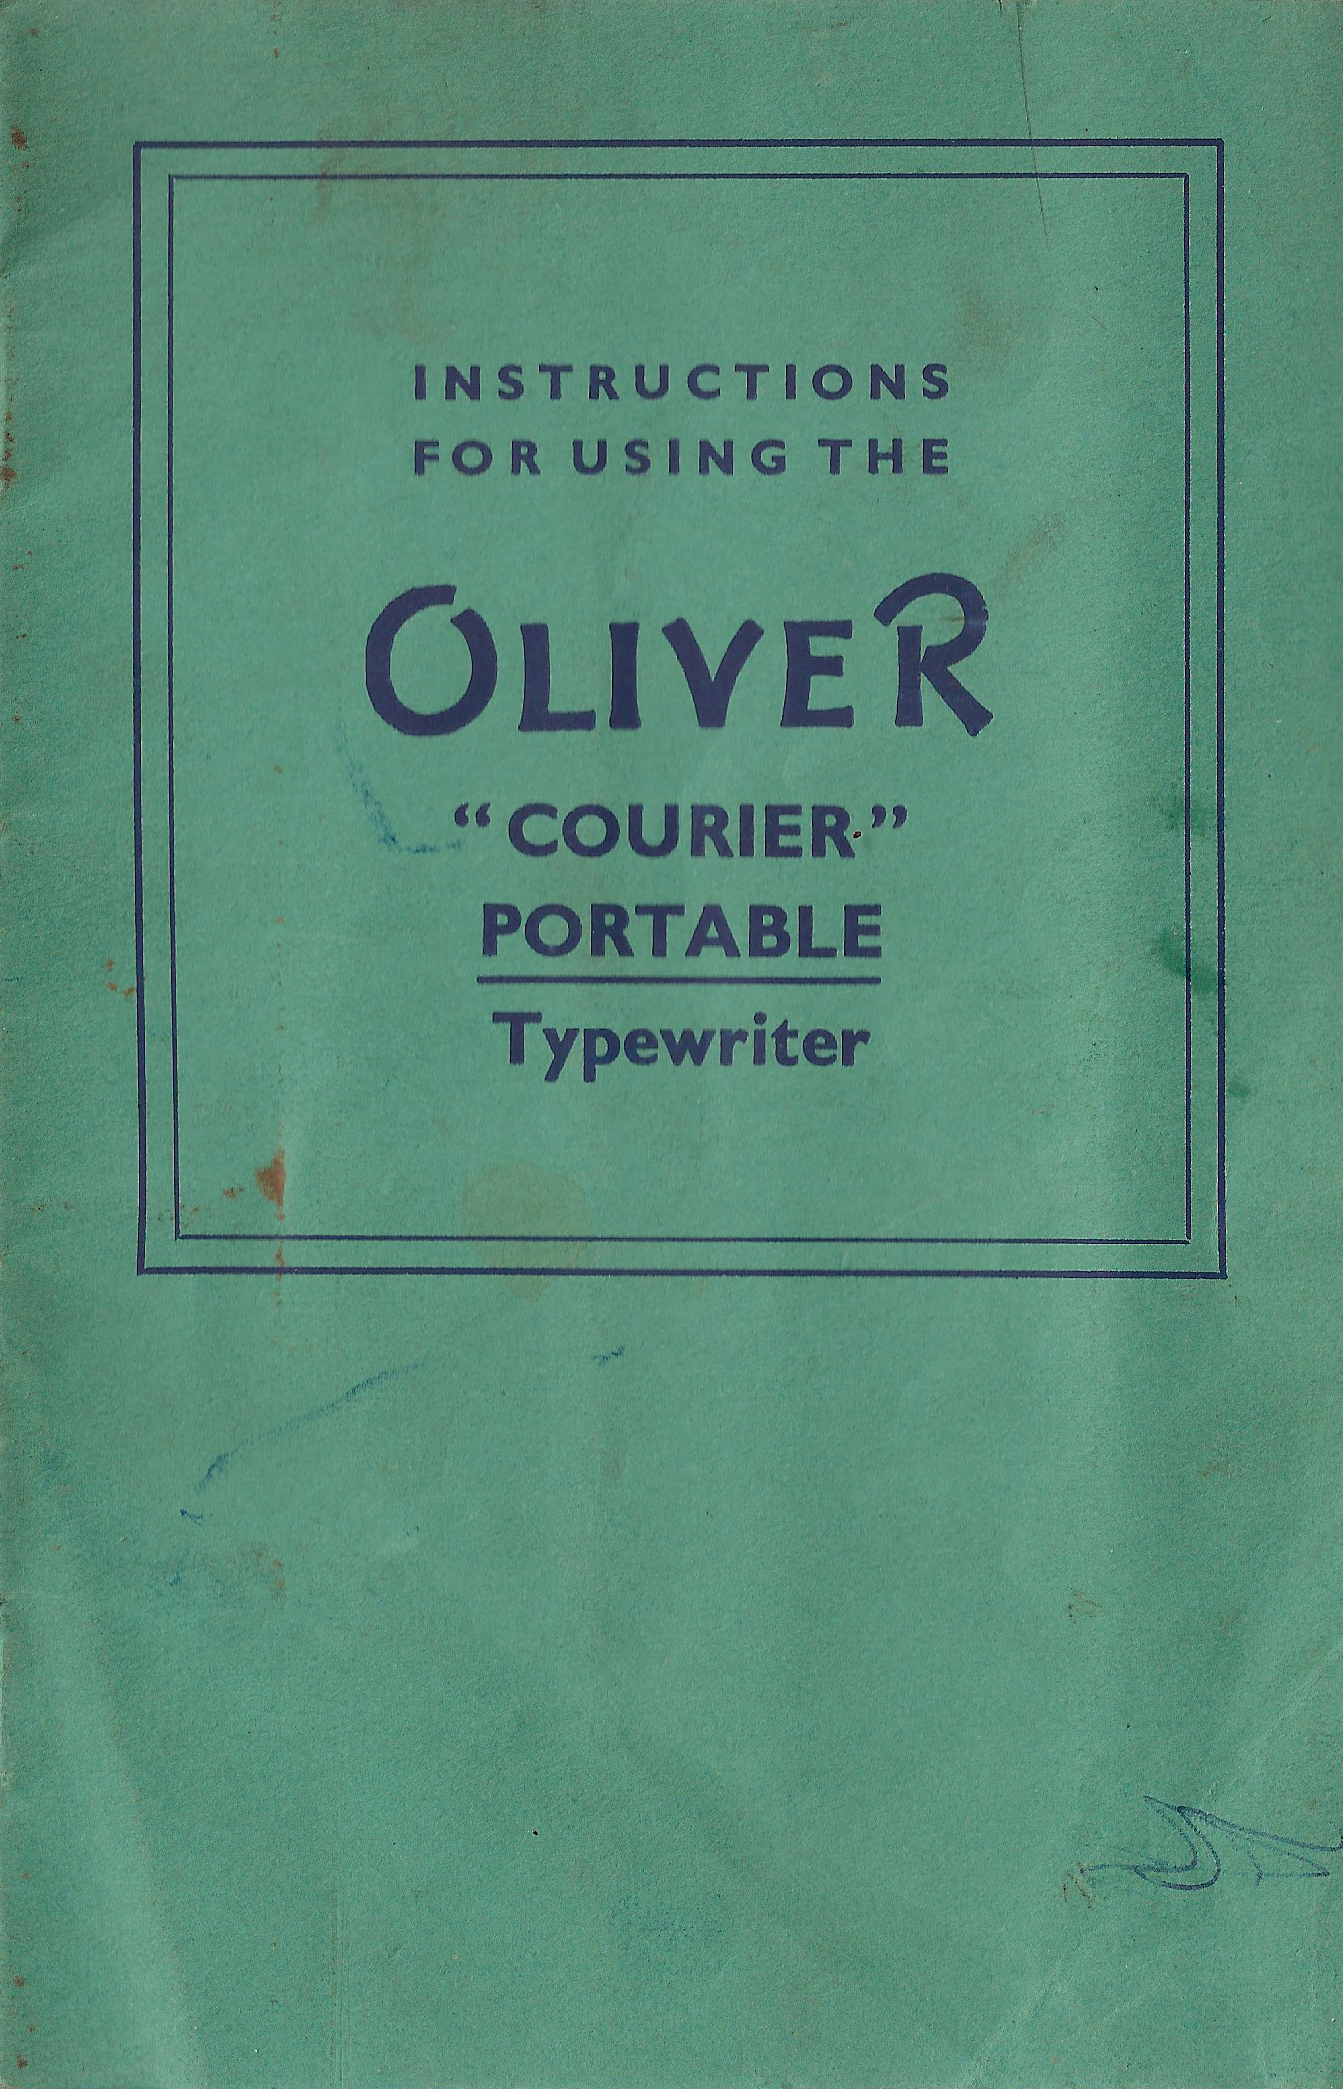 Oliver Courier Portable Instructions